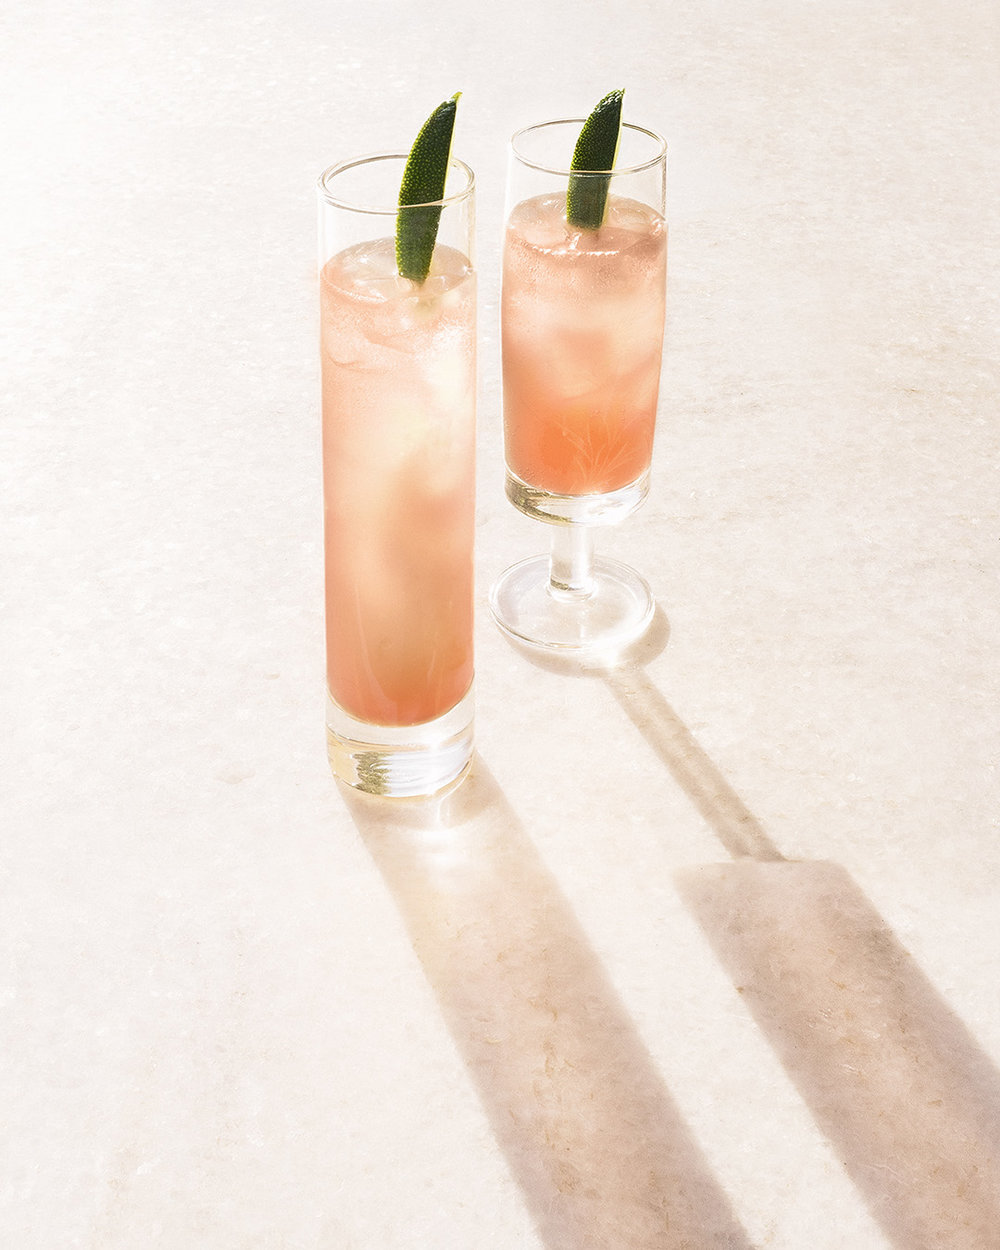 WHIPPET   2  oz  Pomp & Whimsy 2  oz  grapefruit juice 2  oz  tonic   Short shake the P&W and grapefruit juice; pour over ice in a highball glass.     Top with the tonic and a squeeze of lime. Give it a quick whirl and serve.